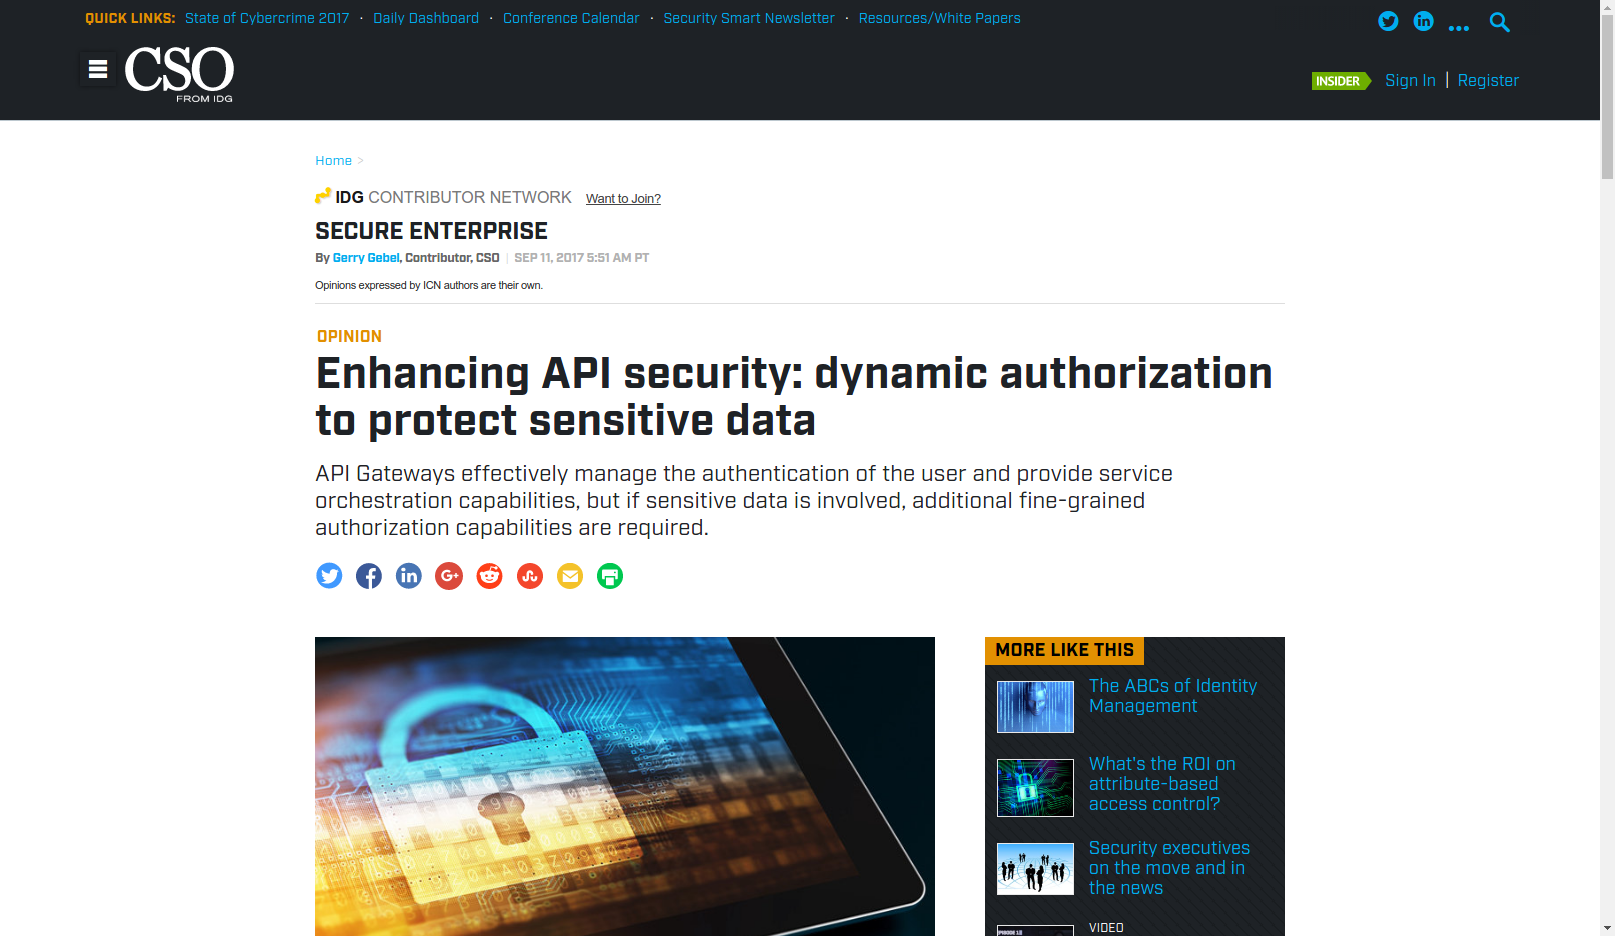 Enhancing API security: dynamic authorization to protect sensitive data